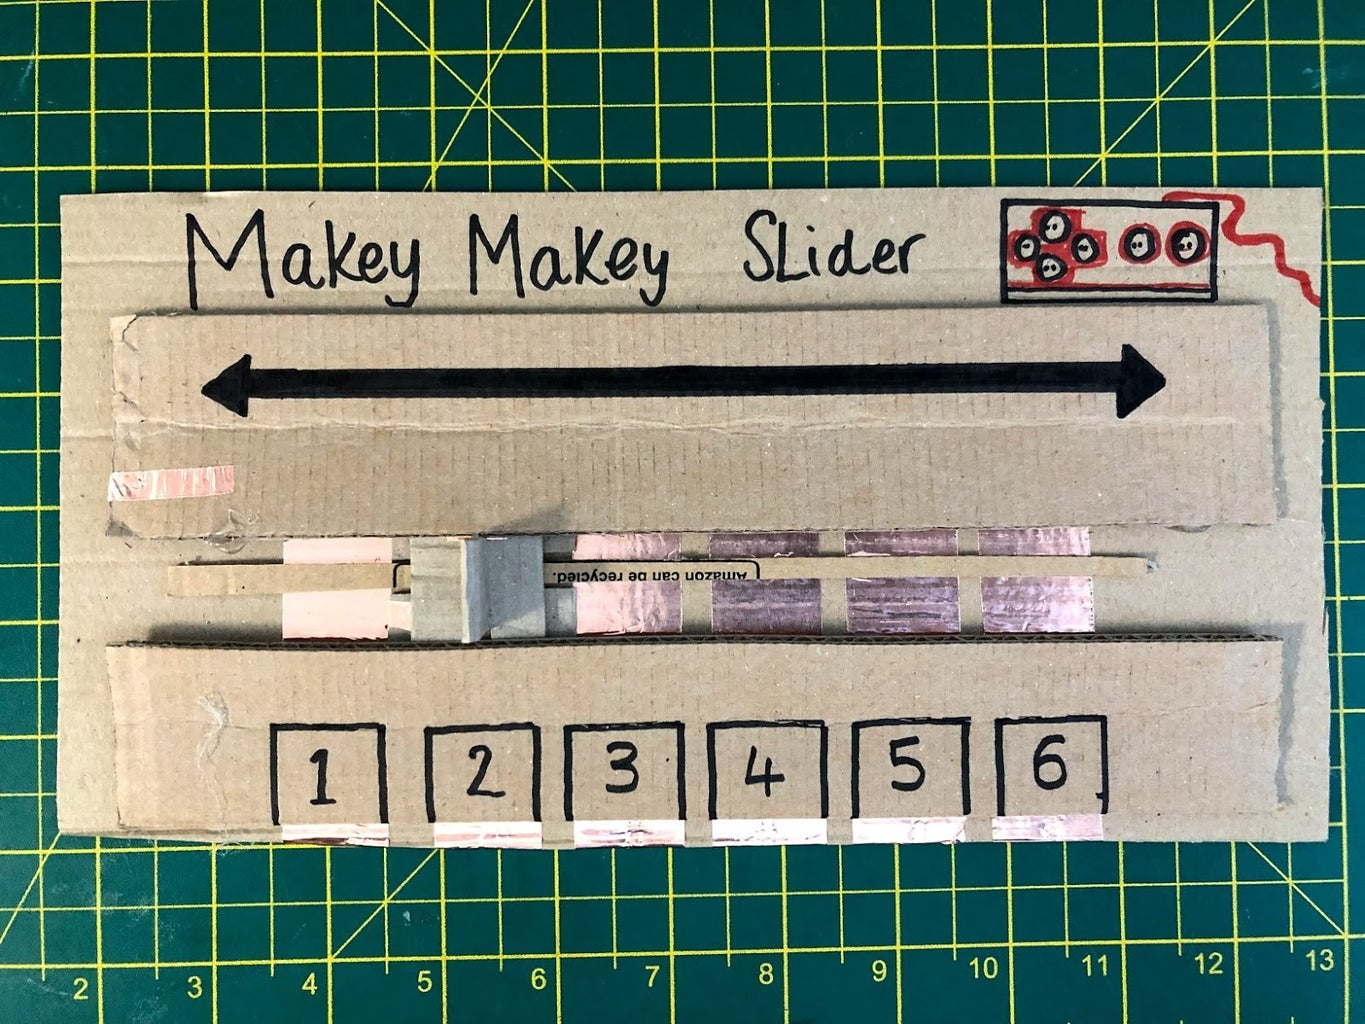 Connecting the Makey Makey